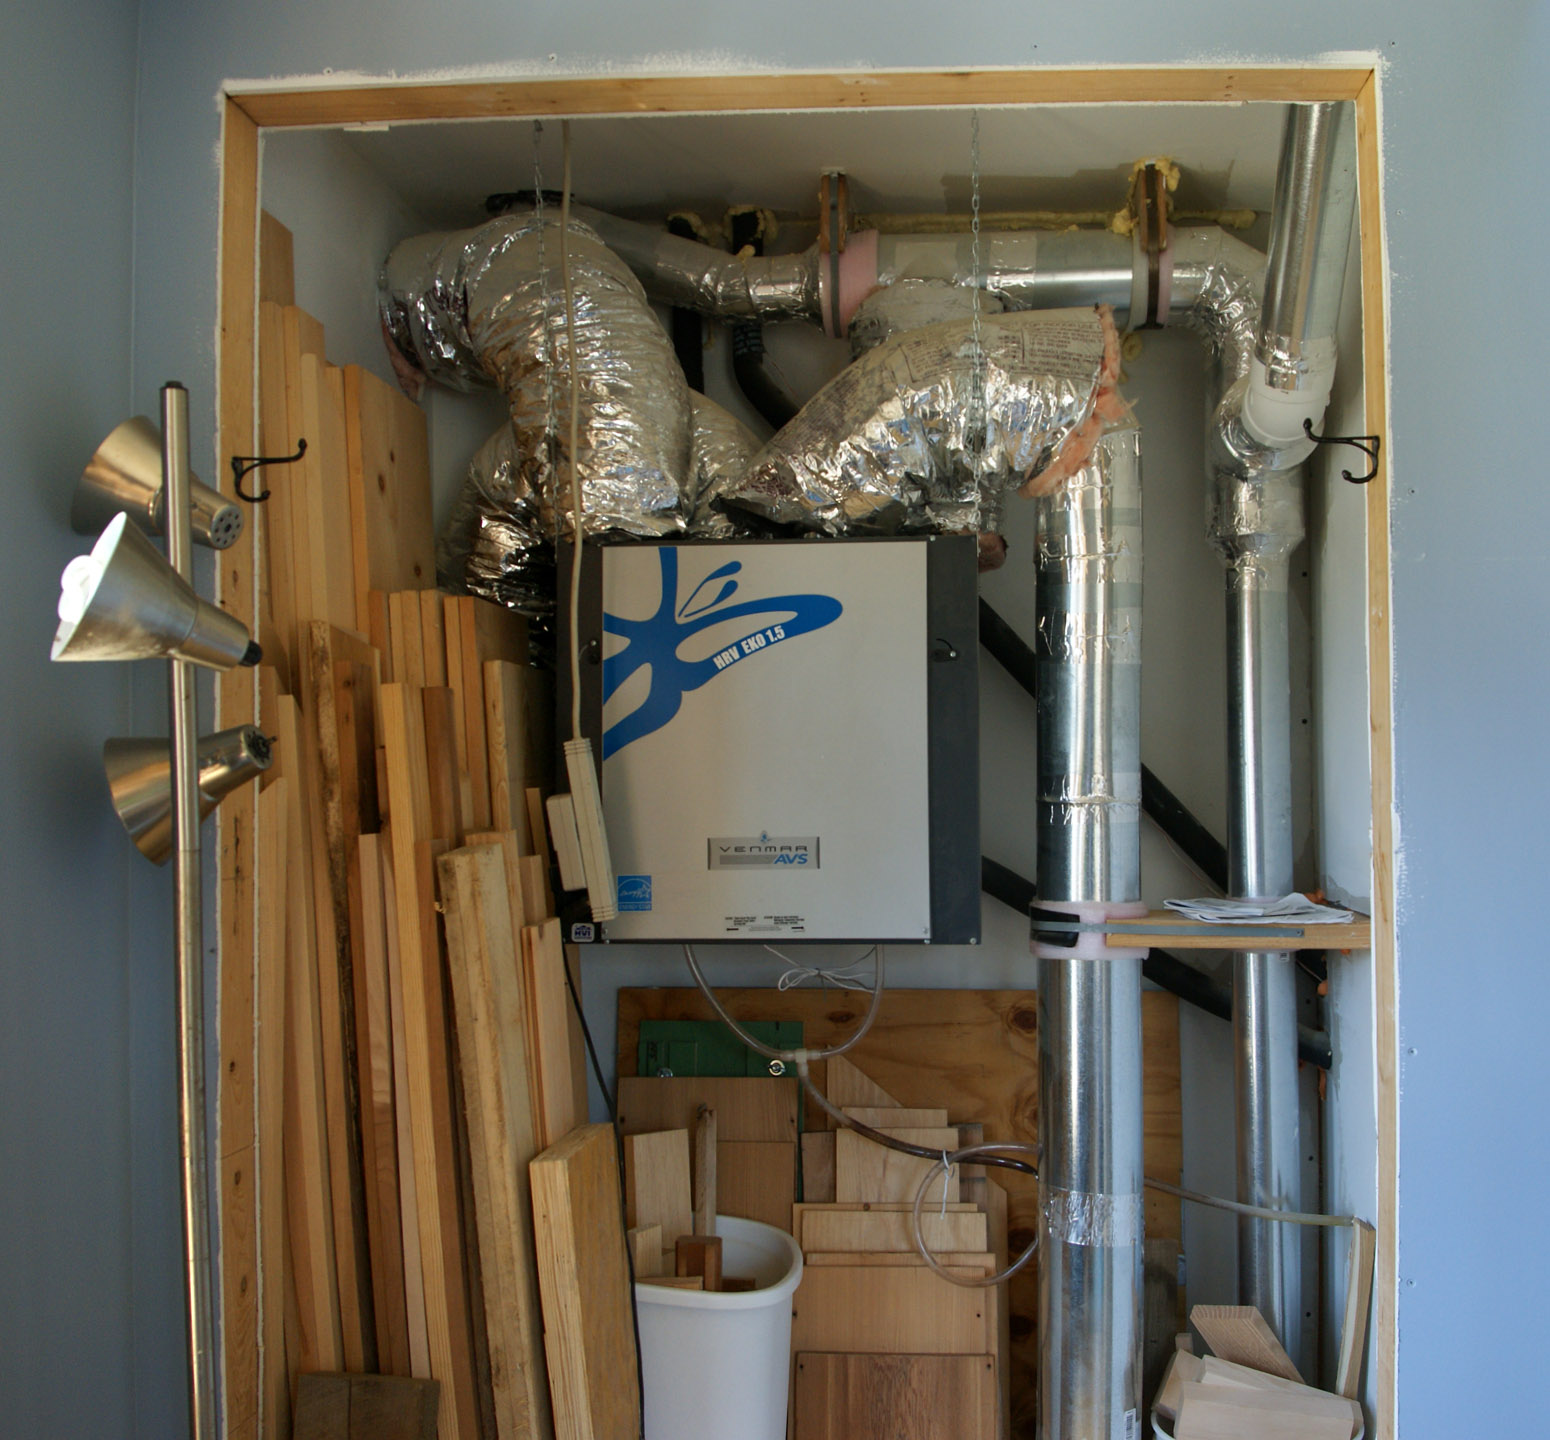 ductwork | design & construction of spartan & hannah's home